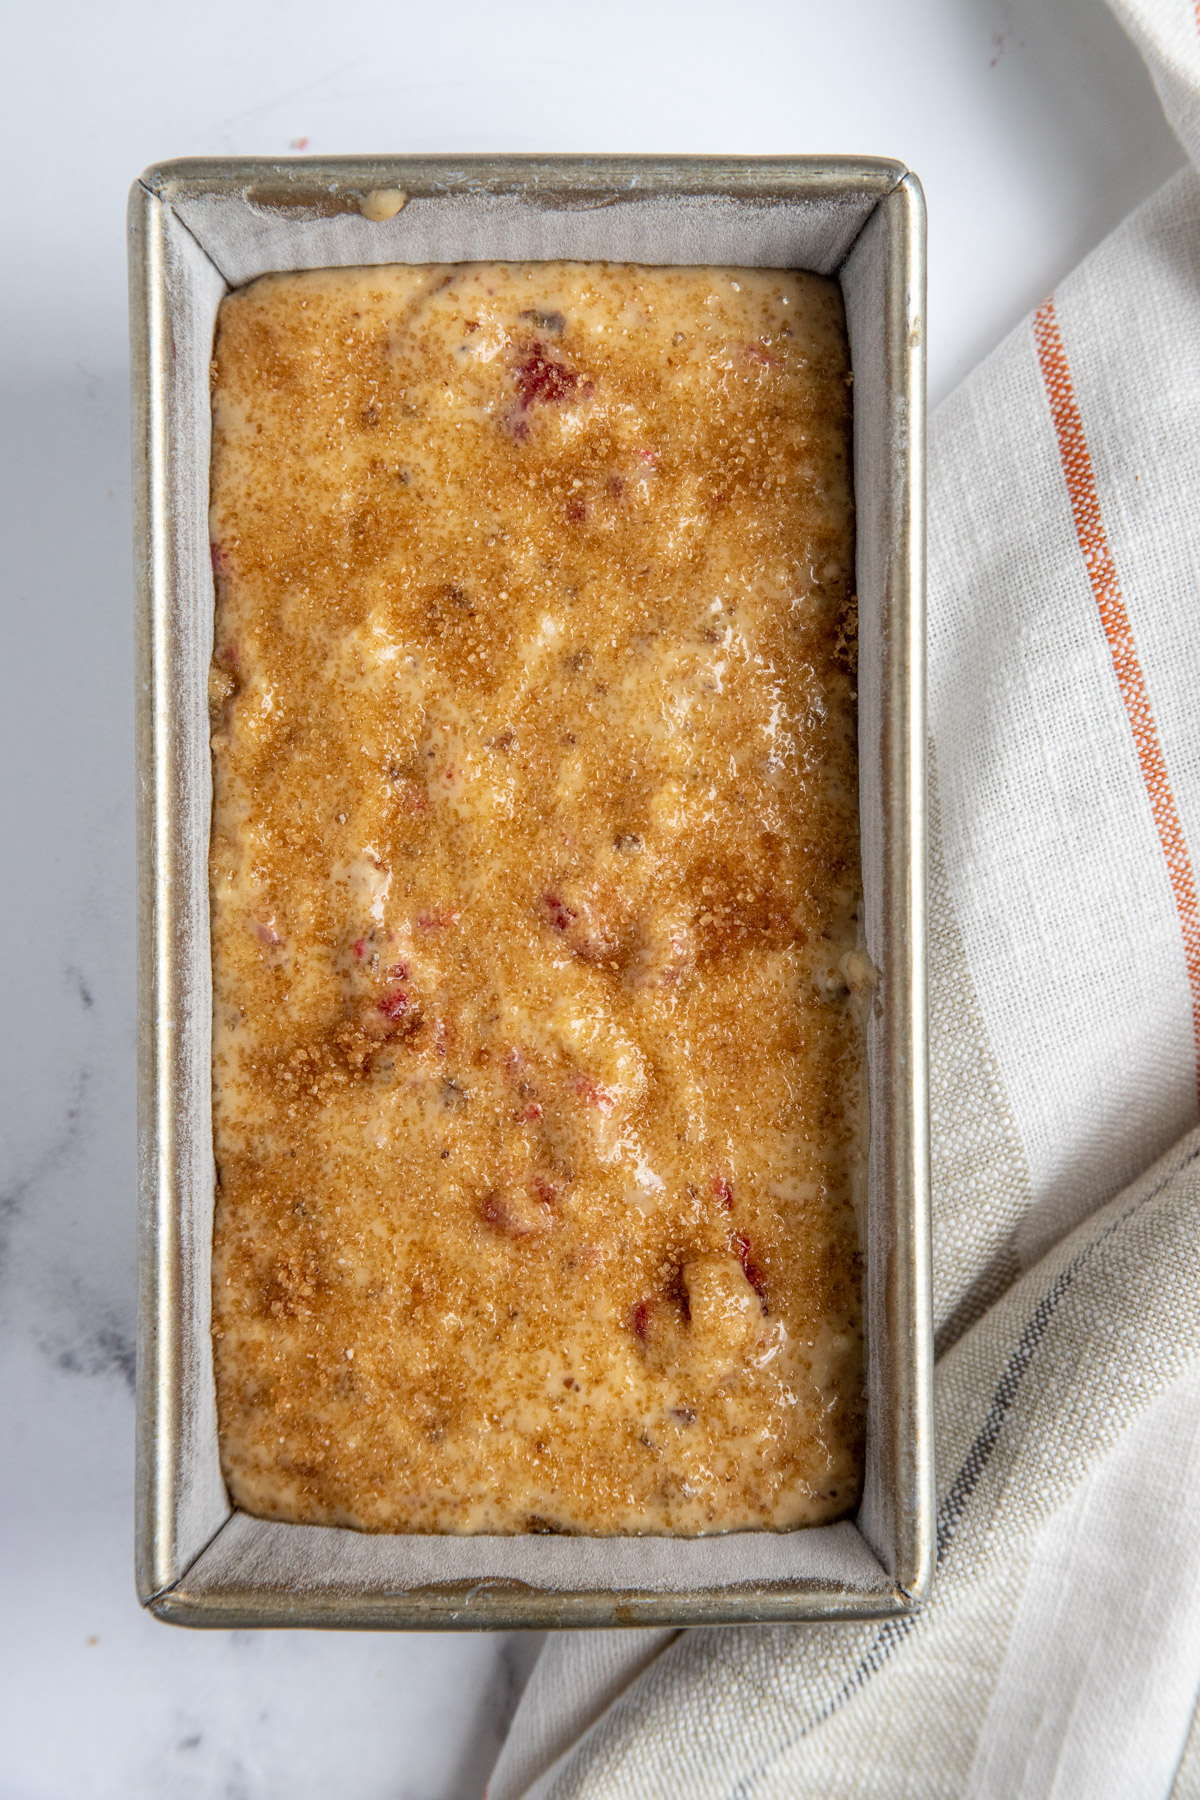 Raspberry Prune Bread Batter scraped into the loaf pan and sprinkled with turbinado sugar